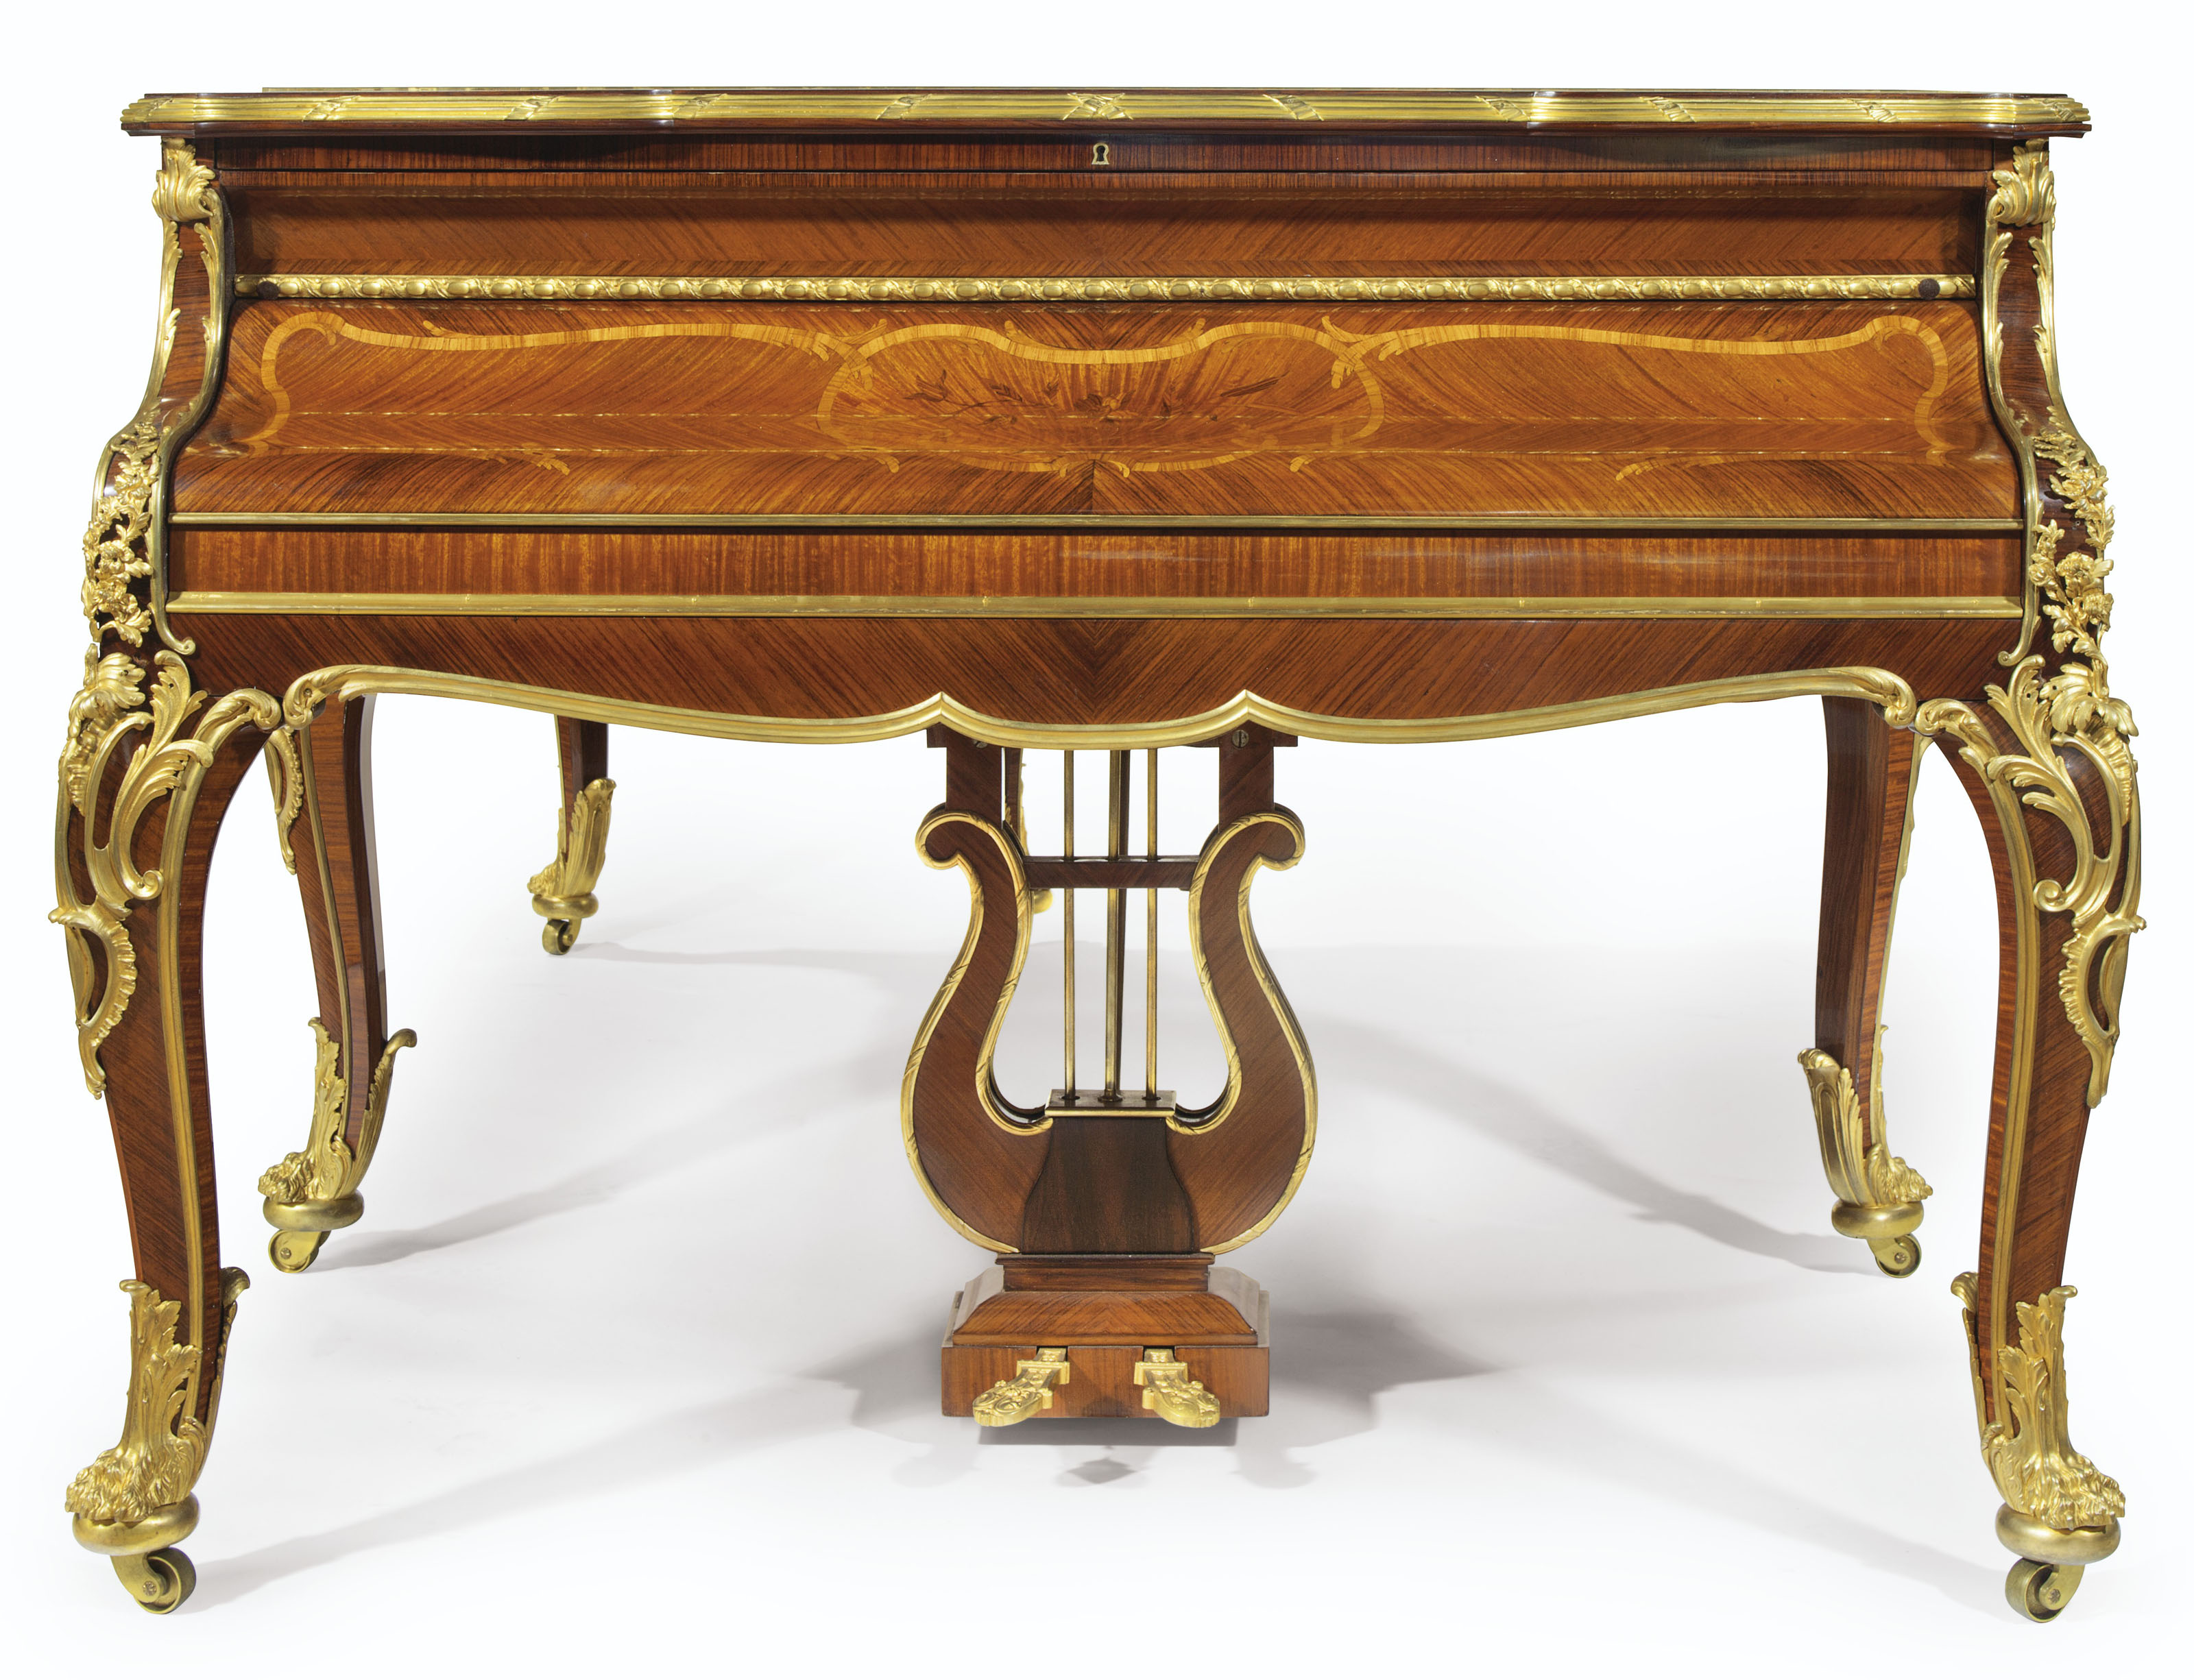 A FRENCH ORMOLU-MOUNTED KINGWOOD, SATINÉ AND BOIS DE BOUT MARQUETRY PIANO À QUEUE